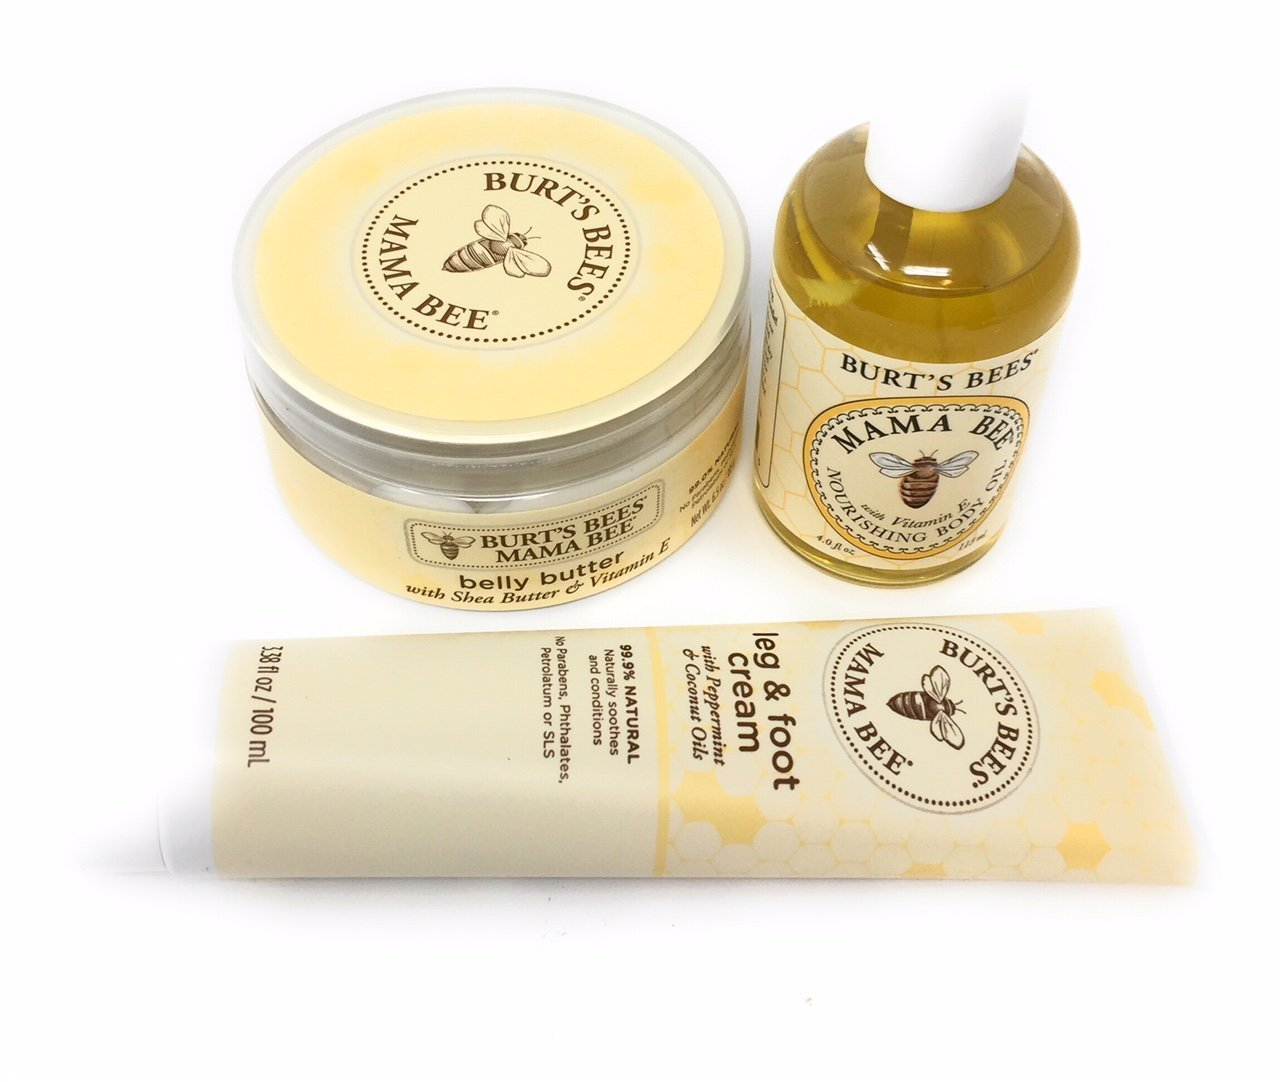 Burts Bees - Mama Bees Relaxation Collection by Burt's Bees